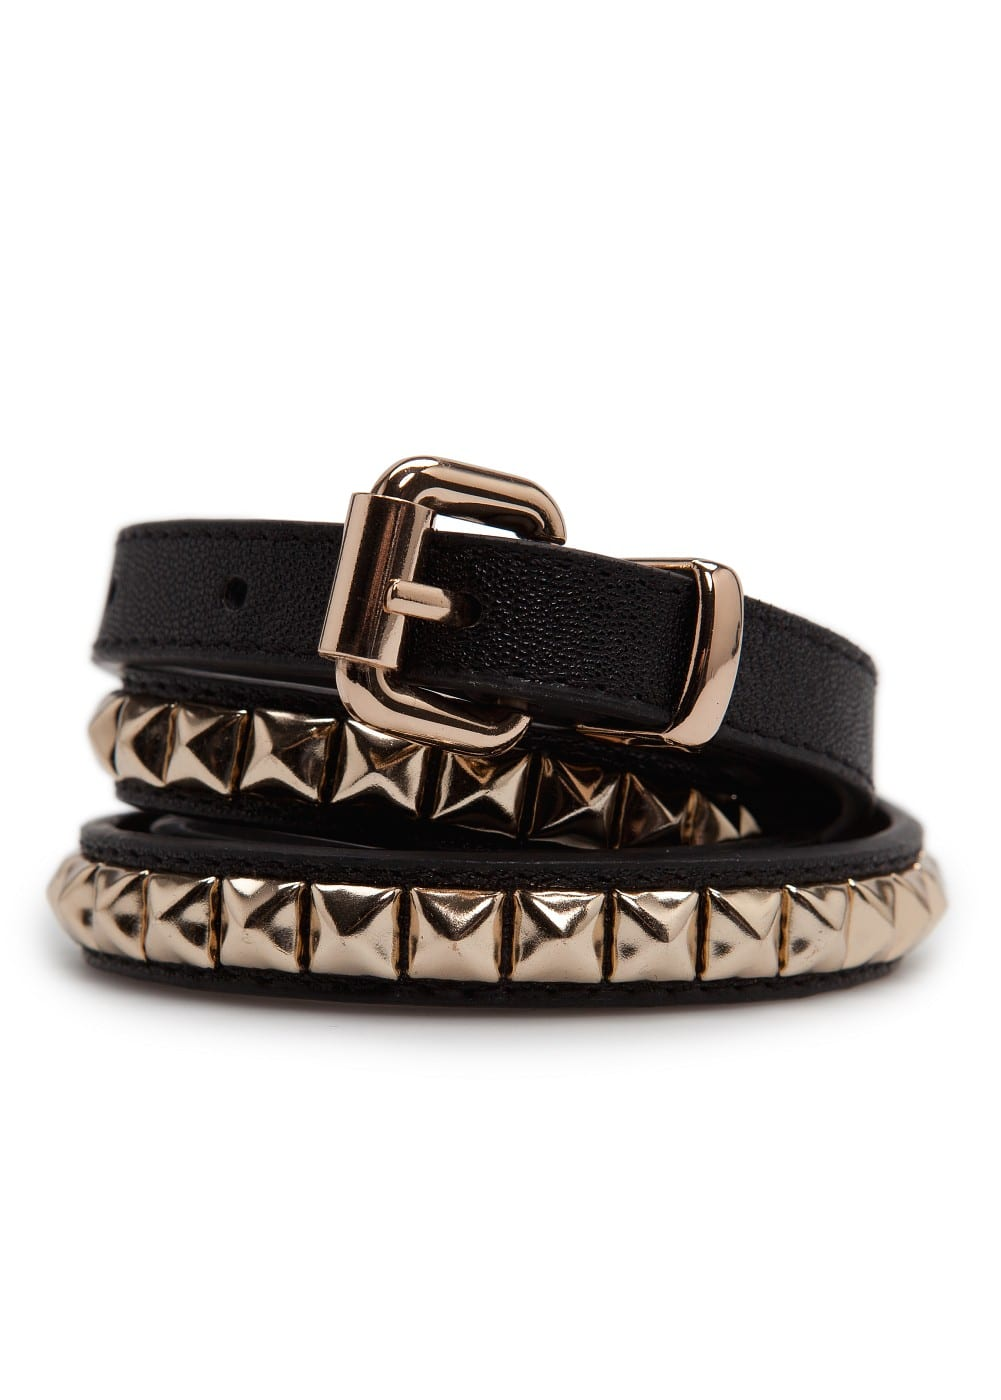 Pyramid studs slim belt